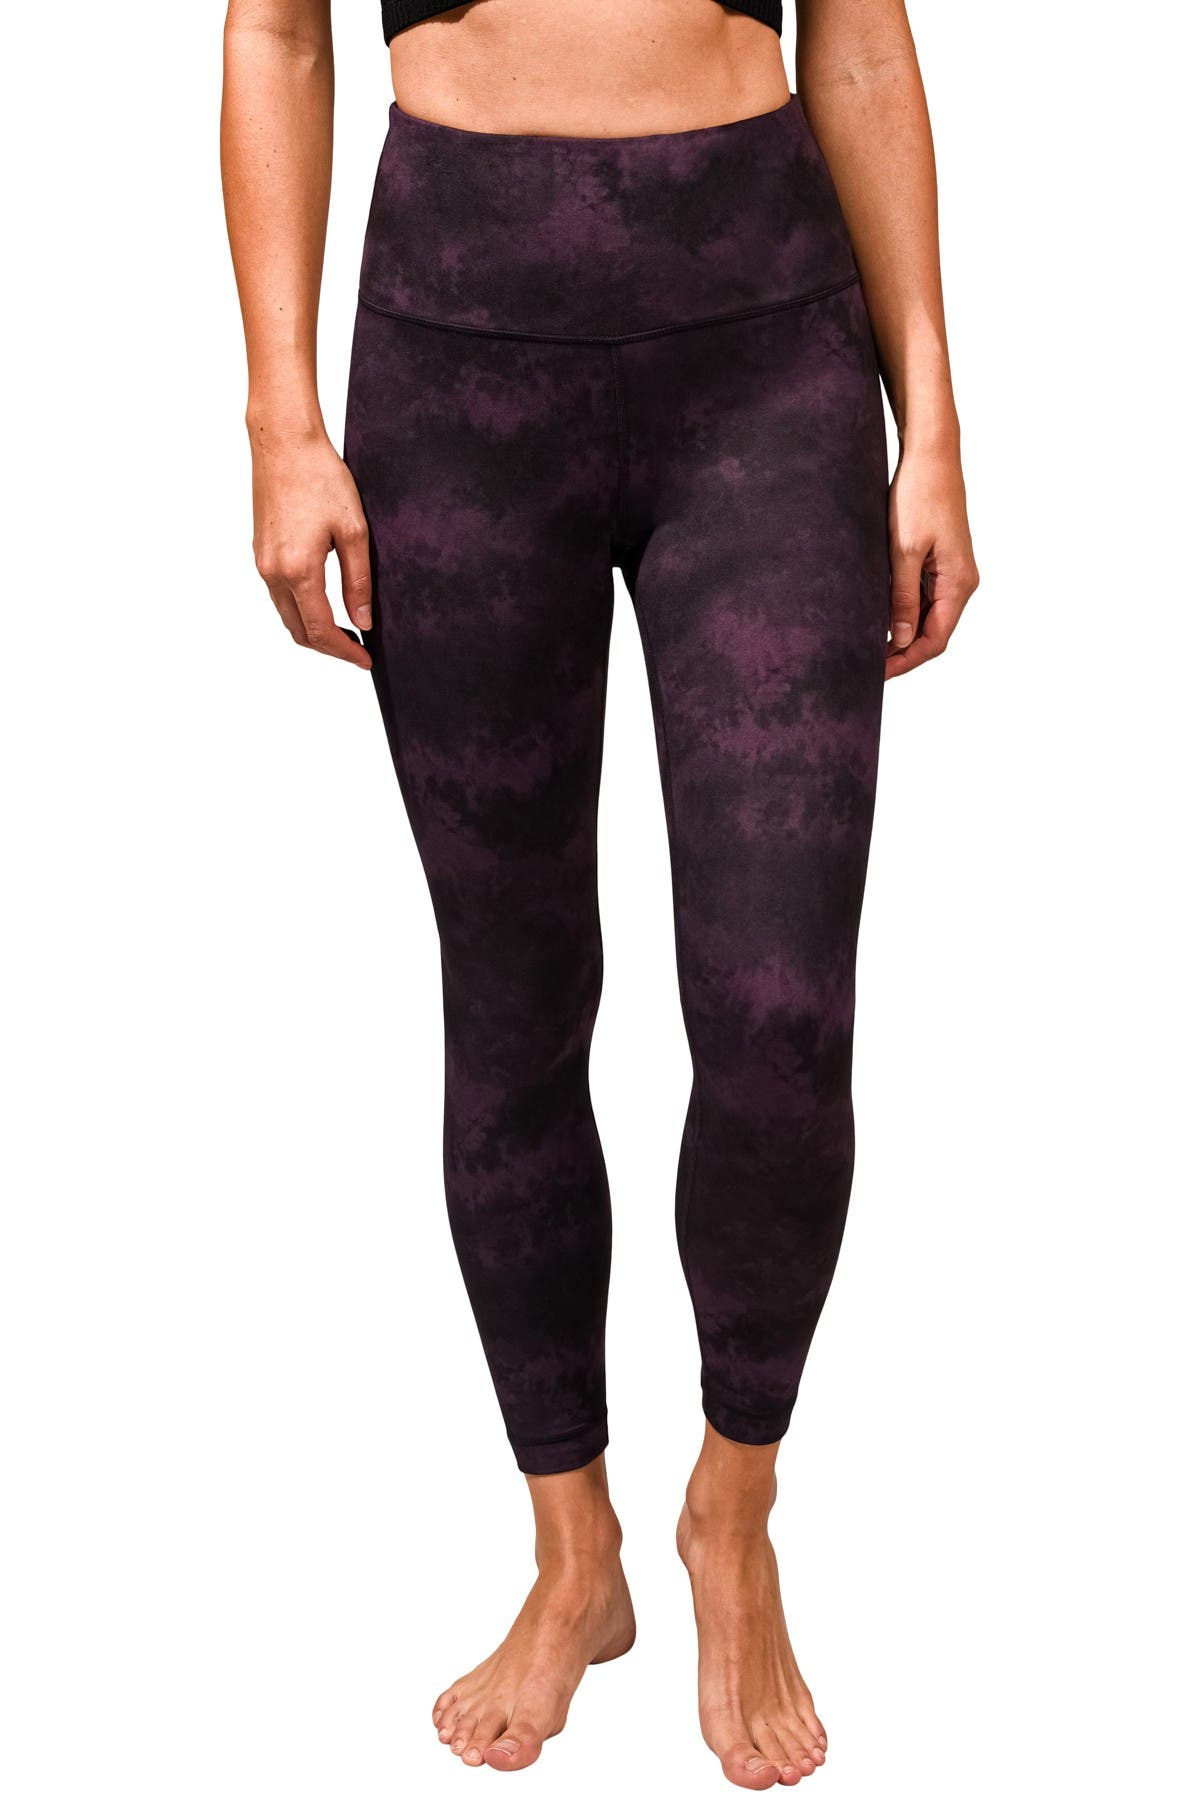 Image of 90 Degree By Reflex Lux Printed High Waist Ankle Leggings